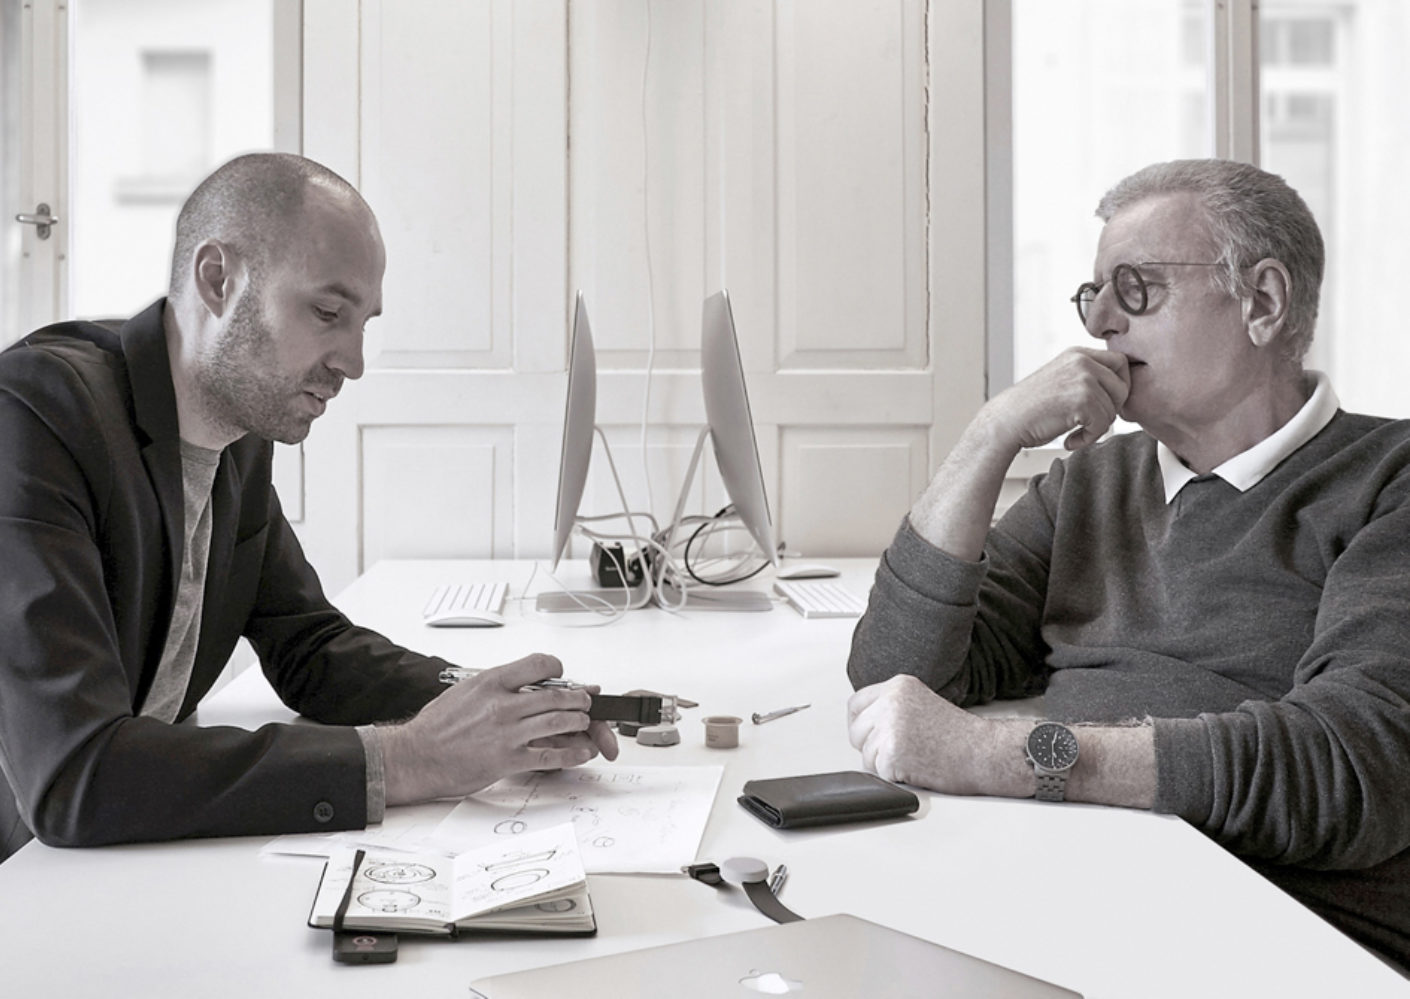 Designer Simon Husslein (left) and entrepreneur Pierre Nobs (right).